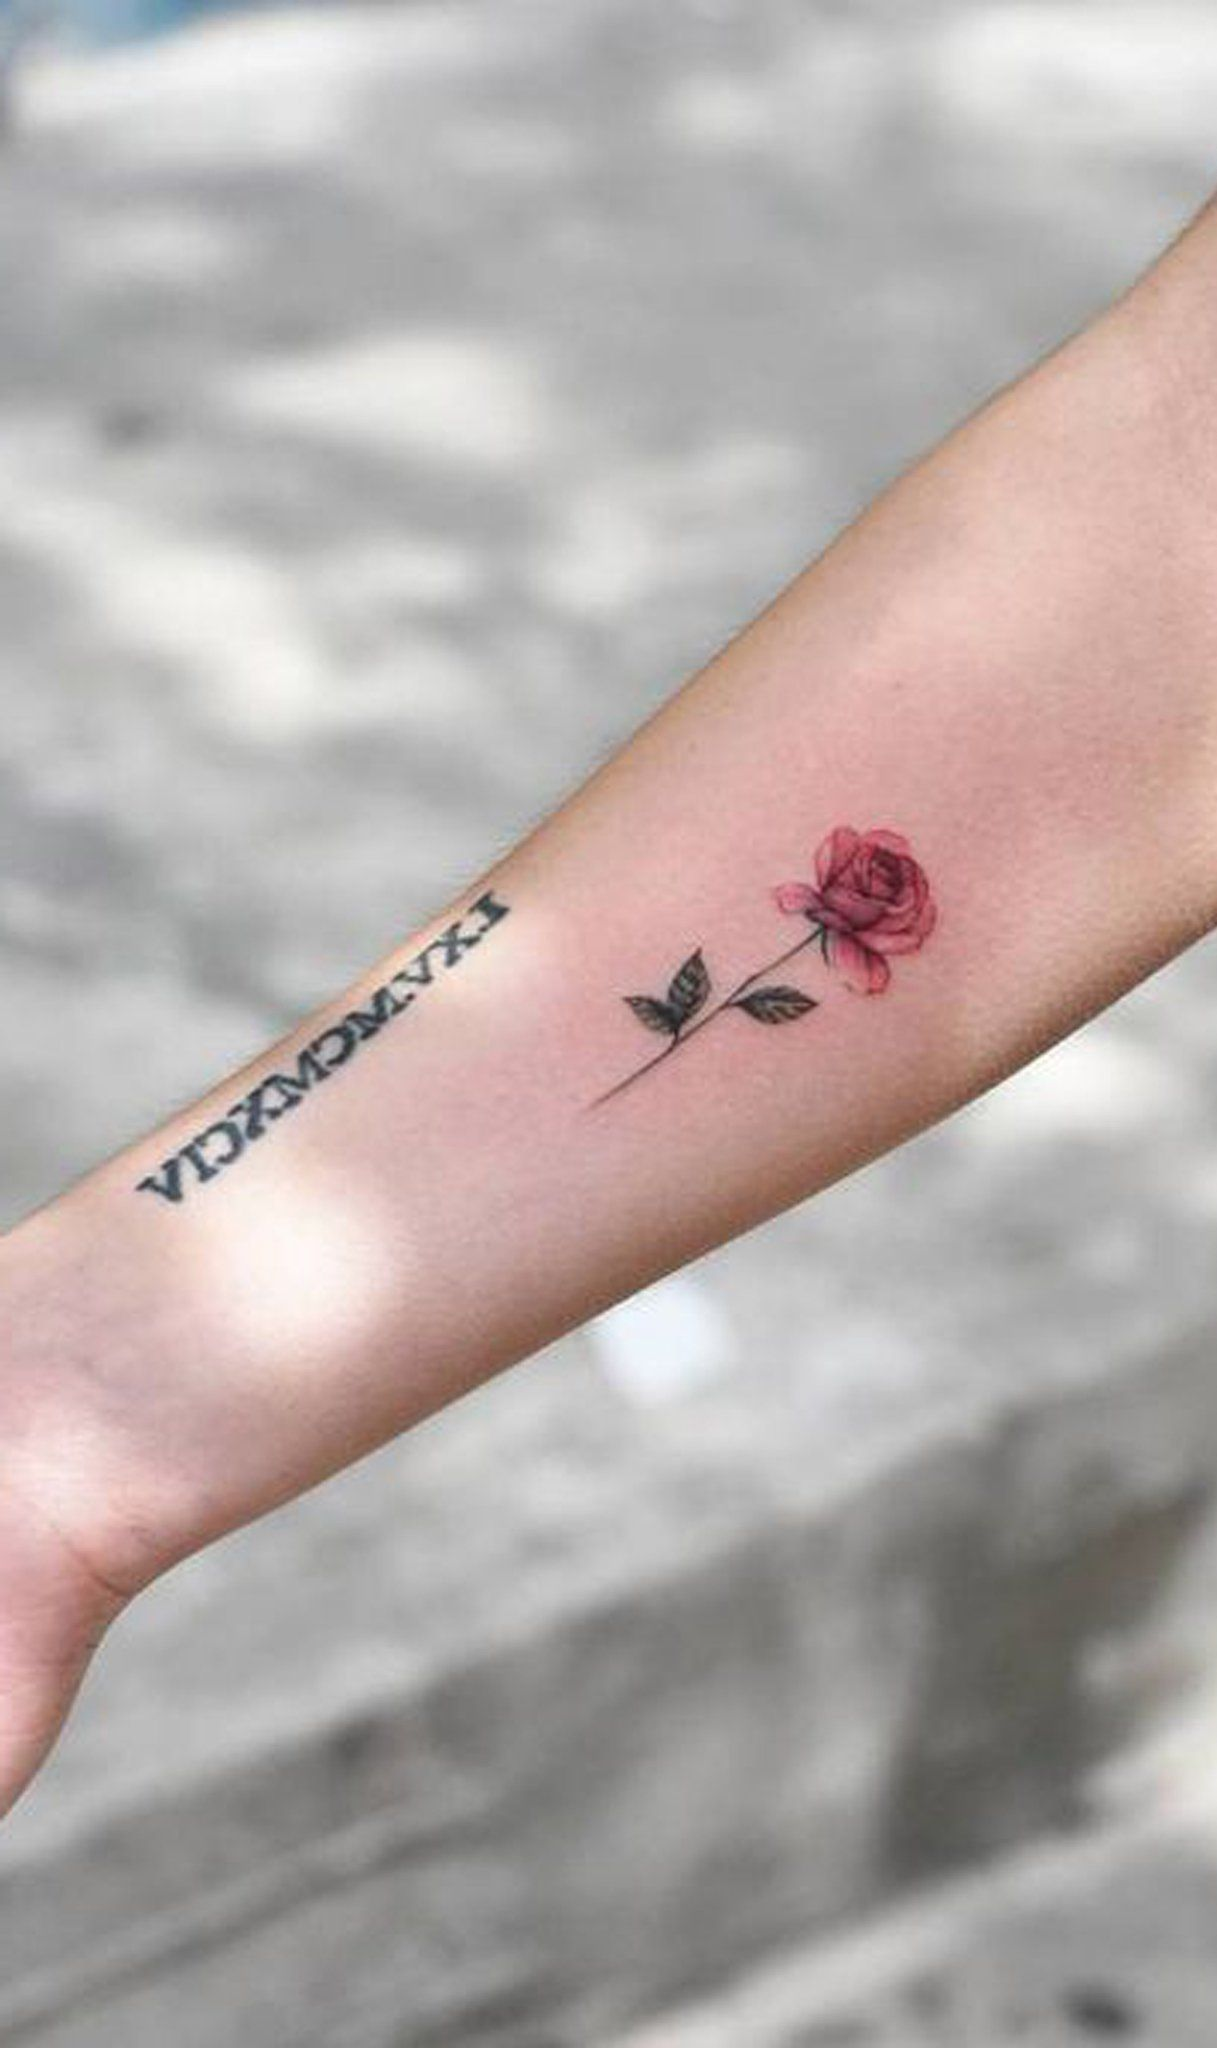 30+ Simple and Small Flower Tattoos Ideas for Women ...